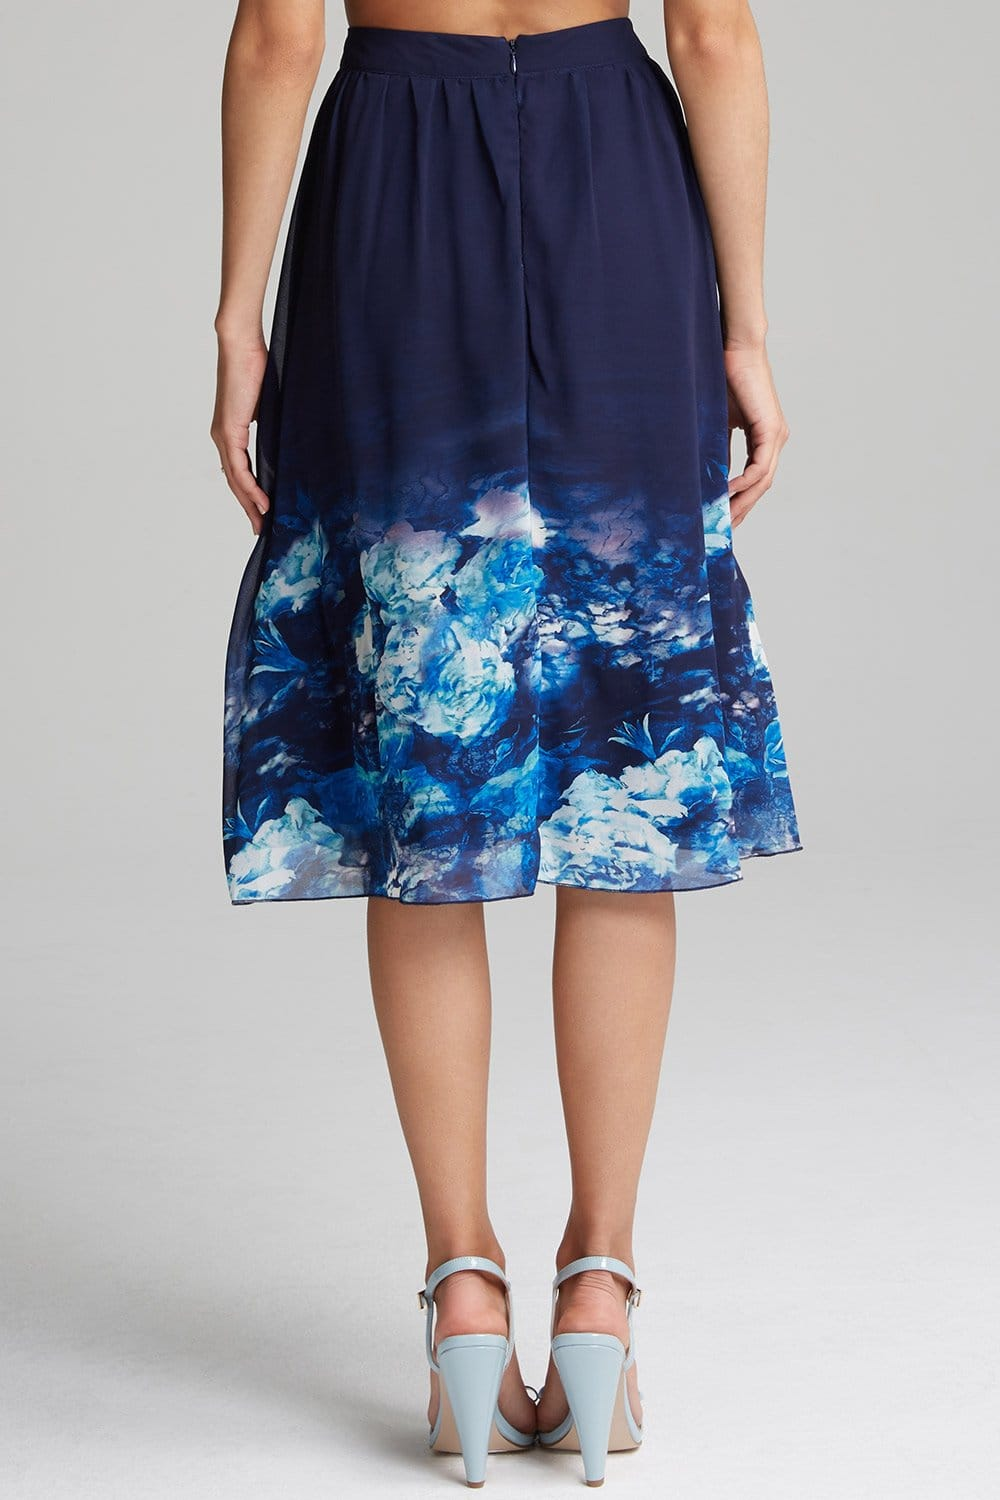 navy floral a line skirt from uk